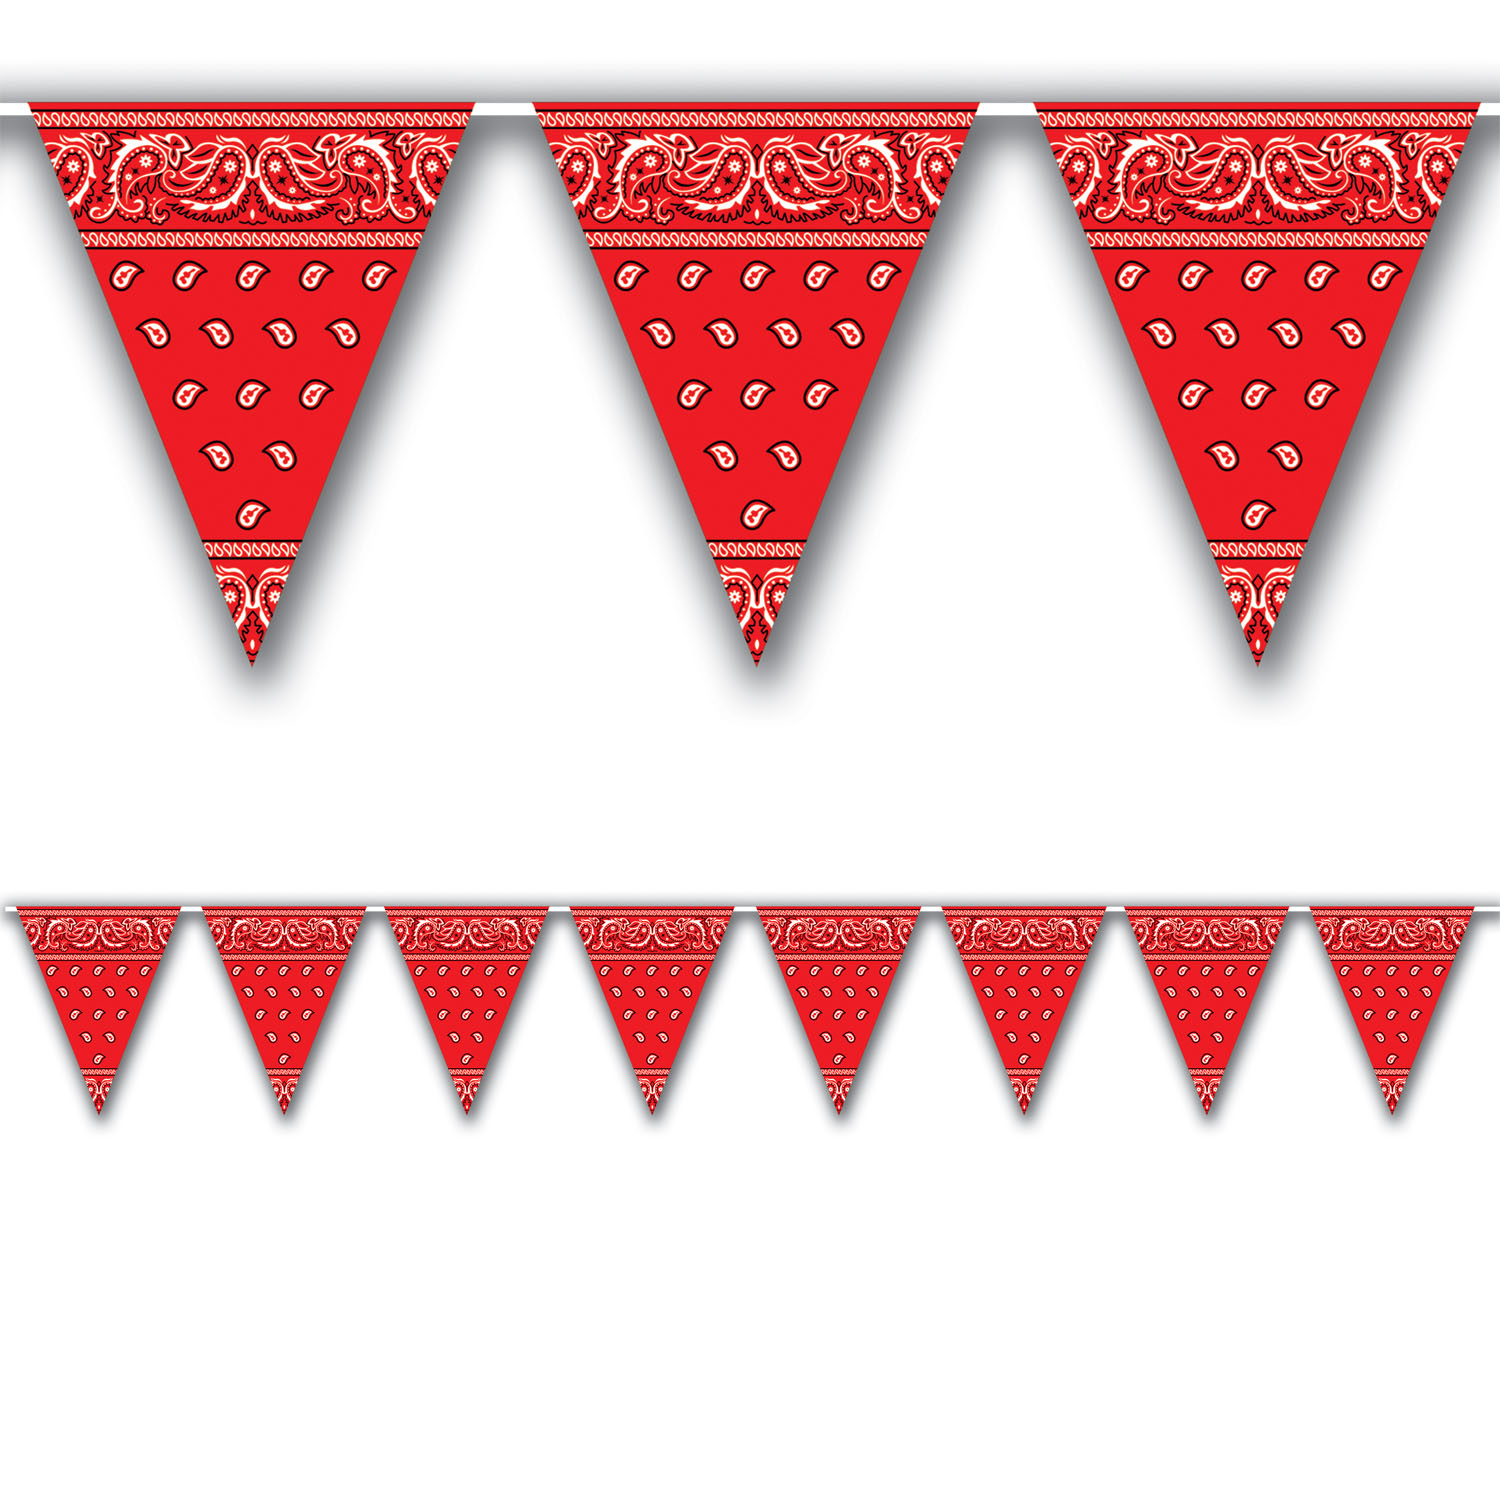 Bandana Pennant Banner (Pack of 12) Bandana Pennant Banner, bandana, banner, western, decoration, red, wholesale, inexpensive, bulk